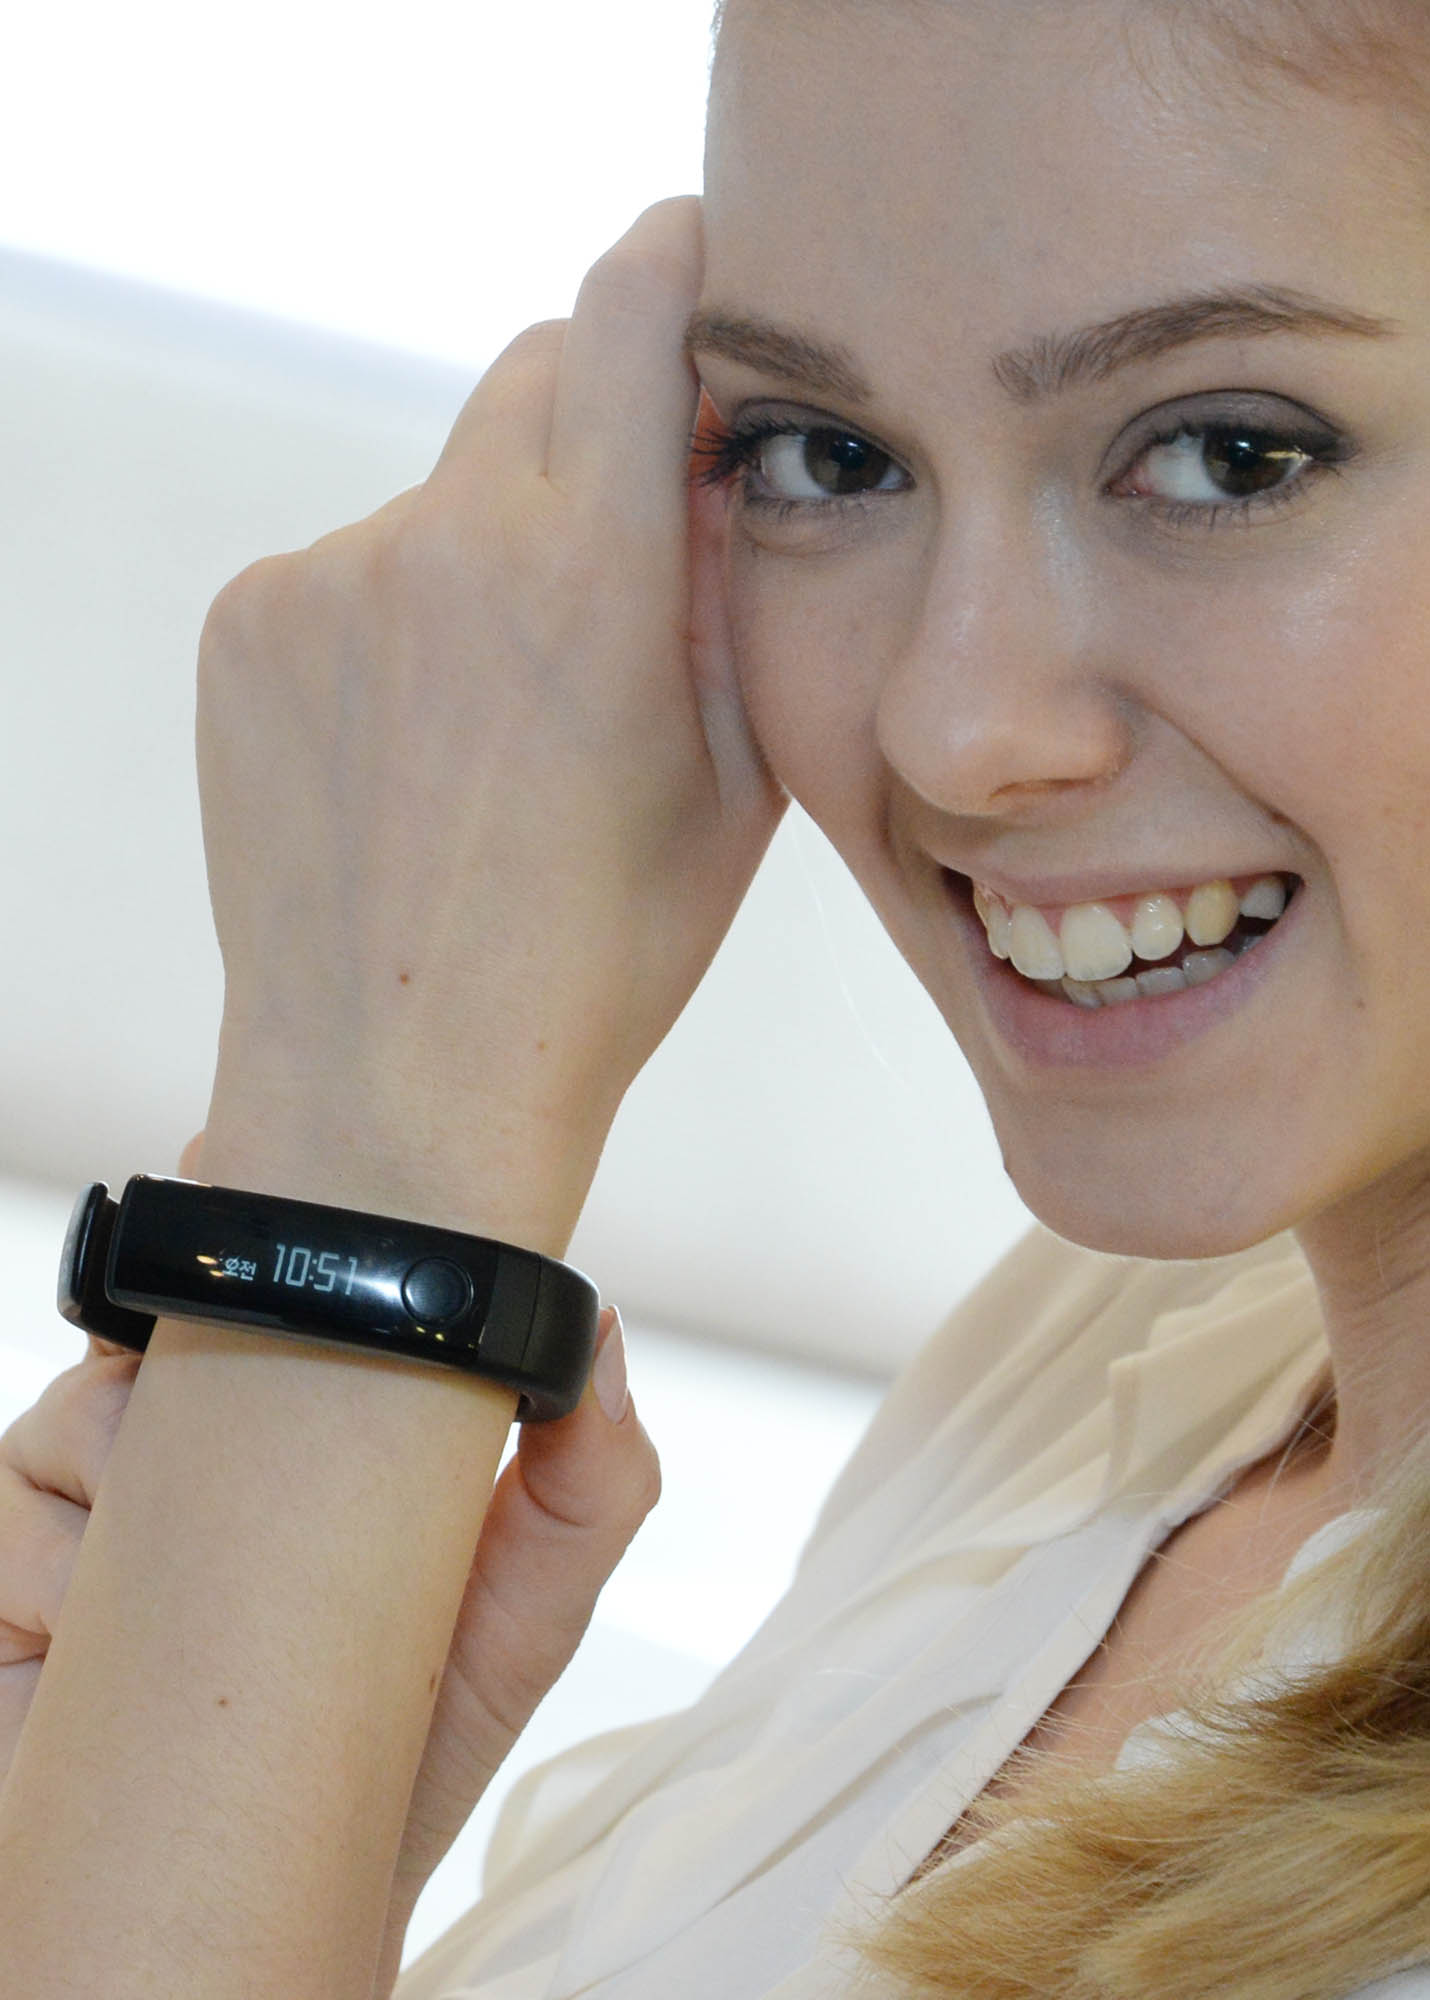 A model is demonstrating LG Lifeband Touch